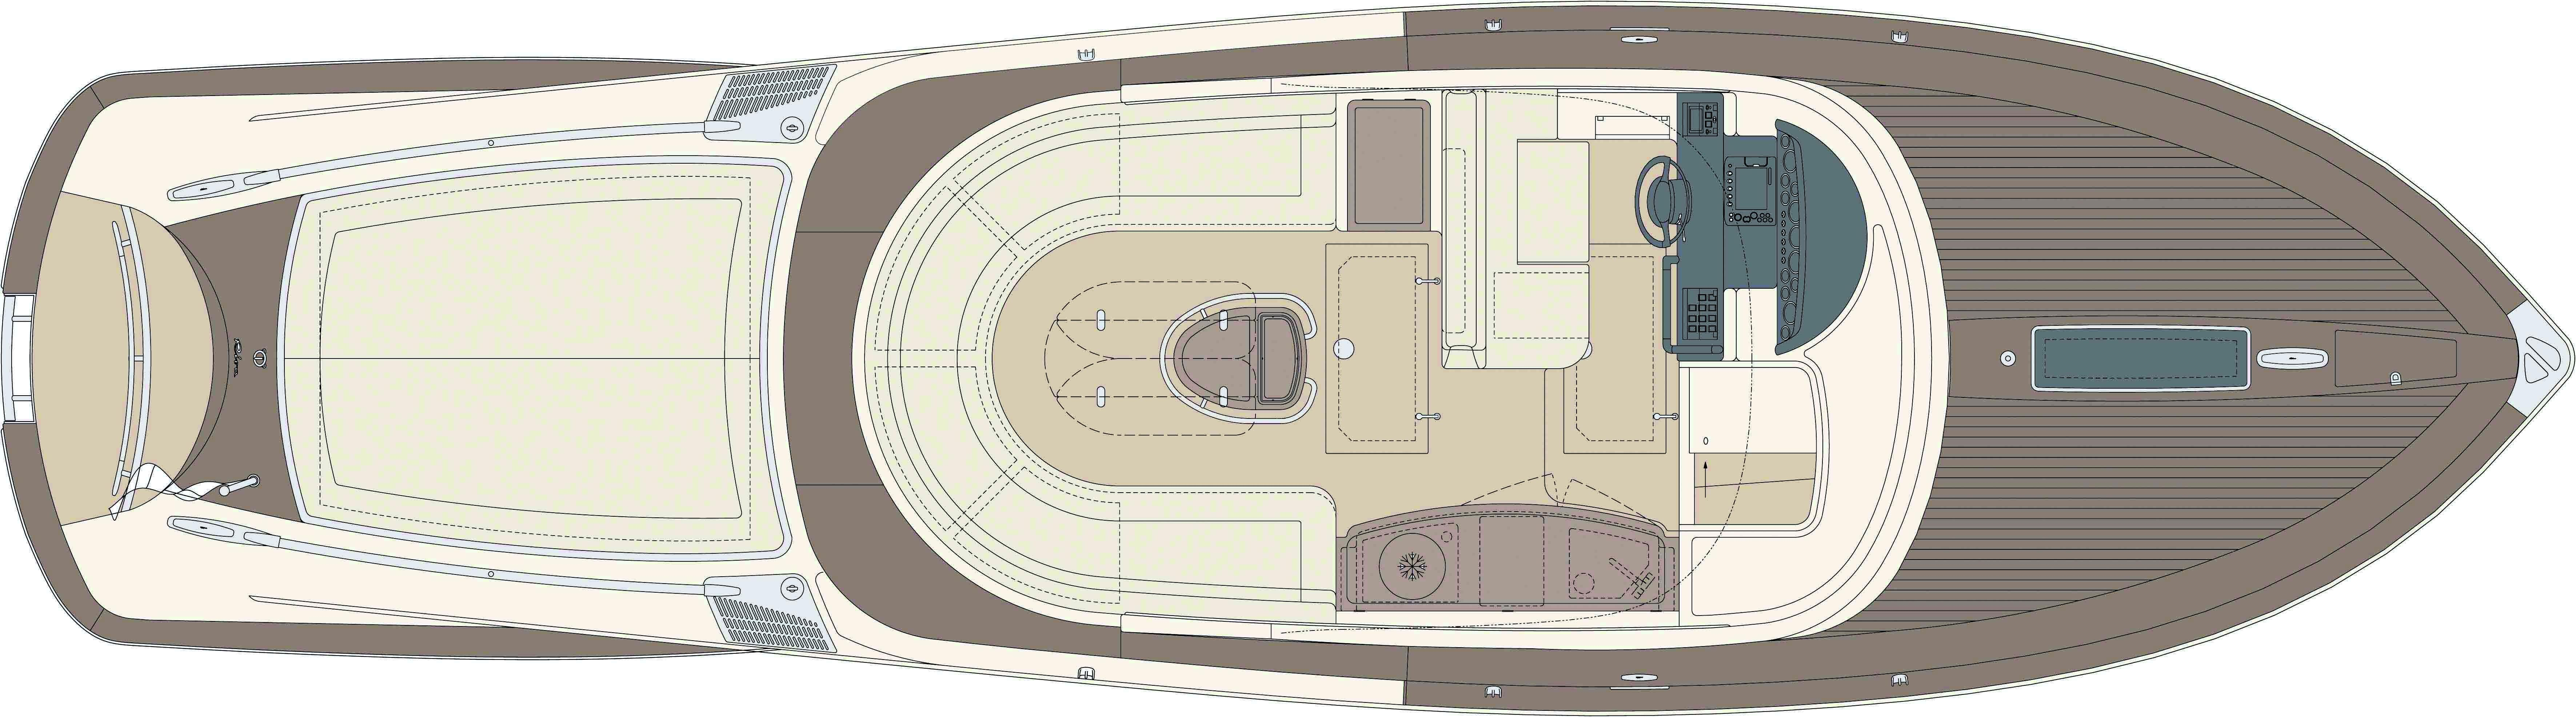 Manufacturer Provided Image: Riva Aquariva Super Upper Deck Layout Plan